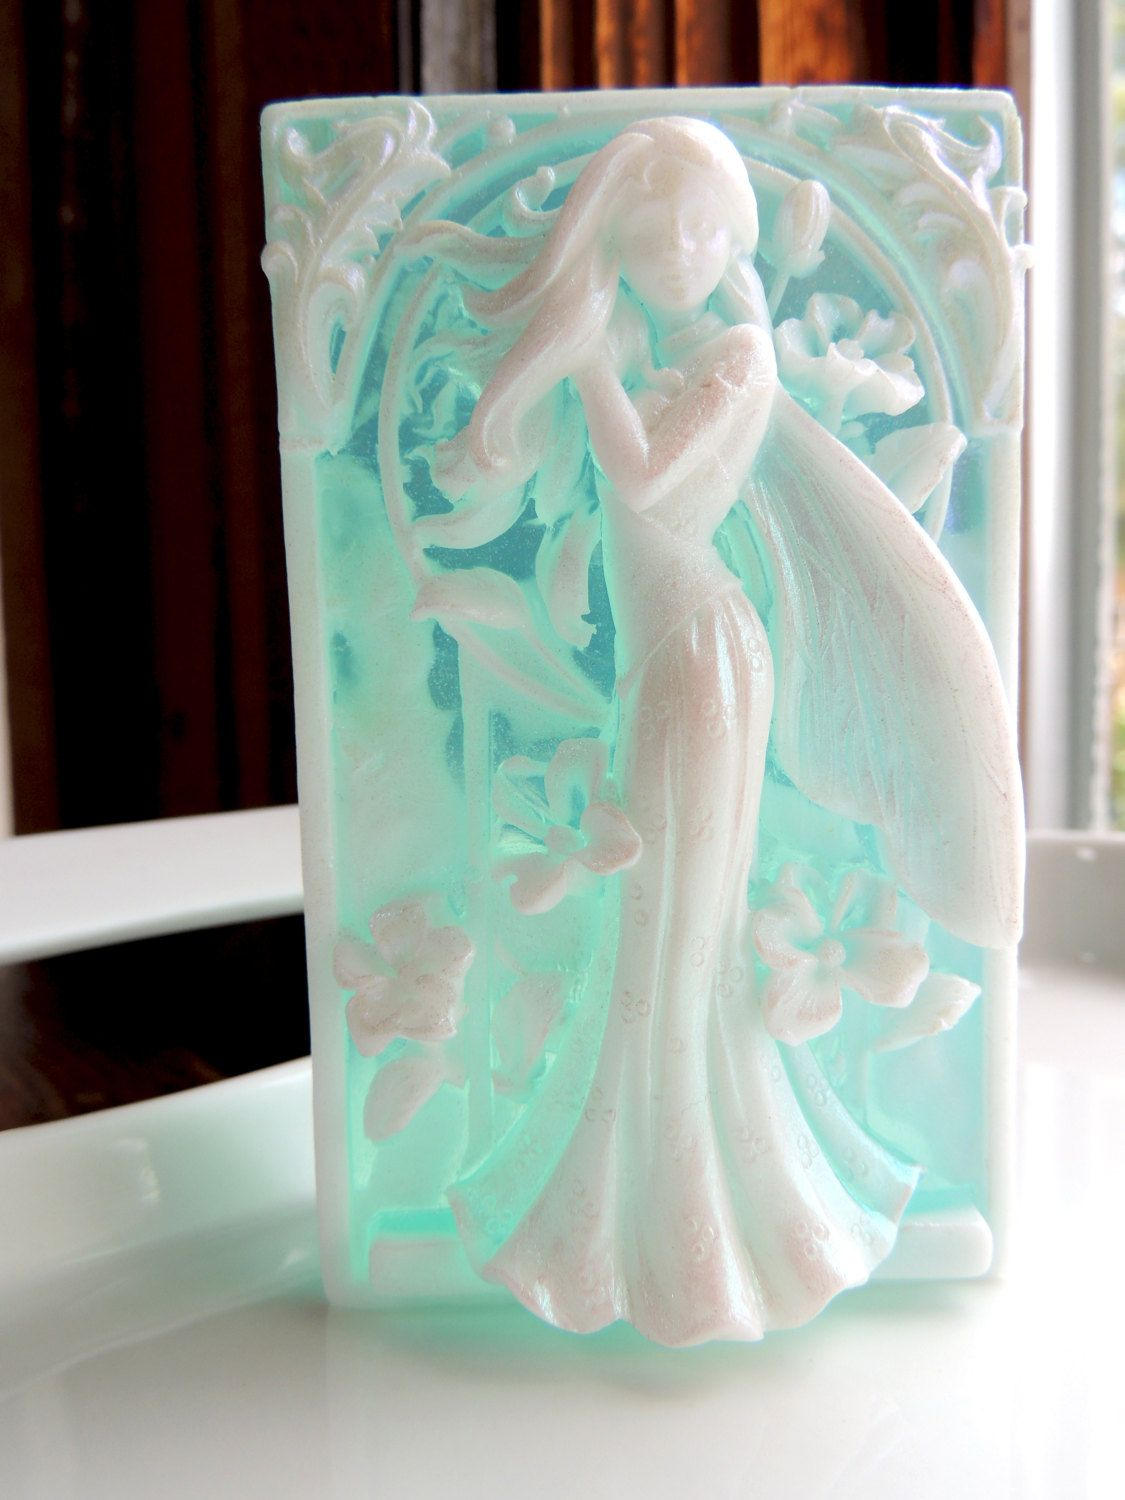 Fairy soapteal and white custom scented detailed soap by